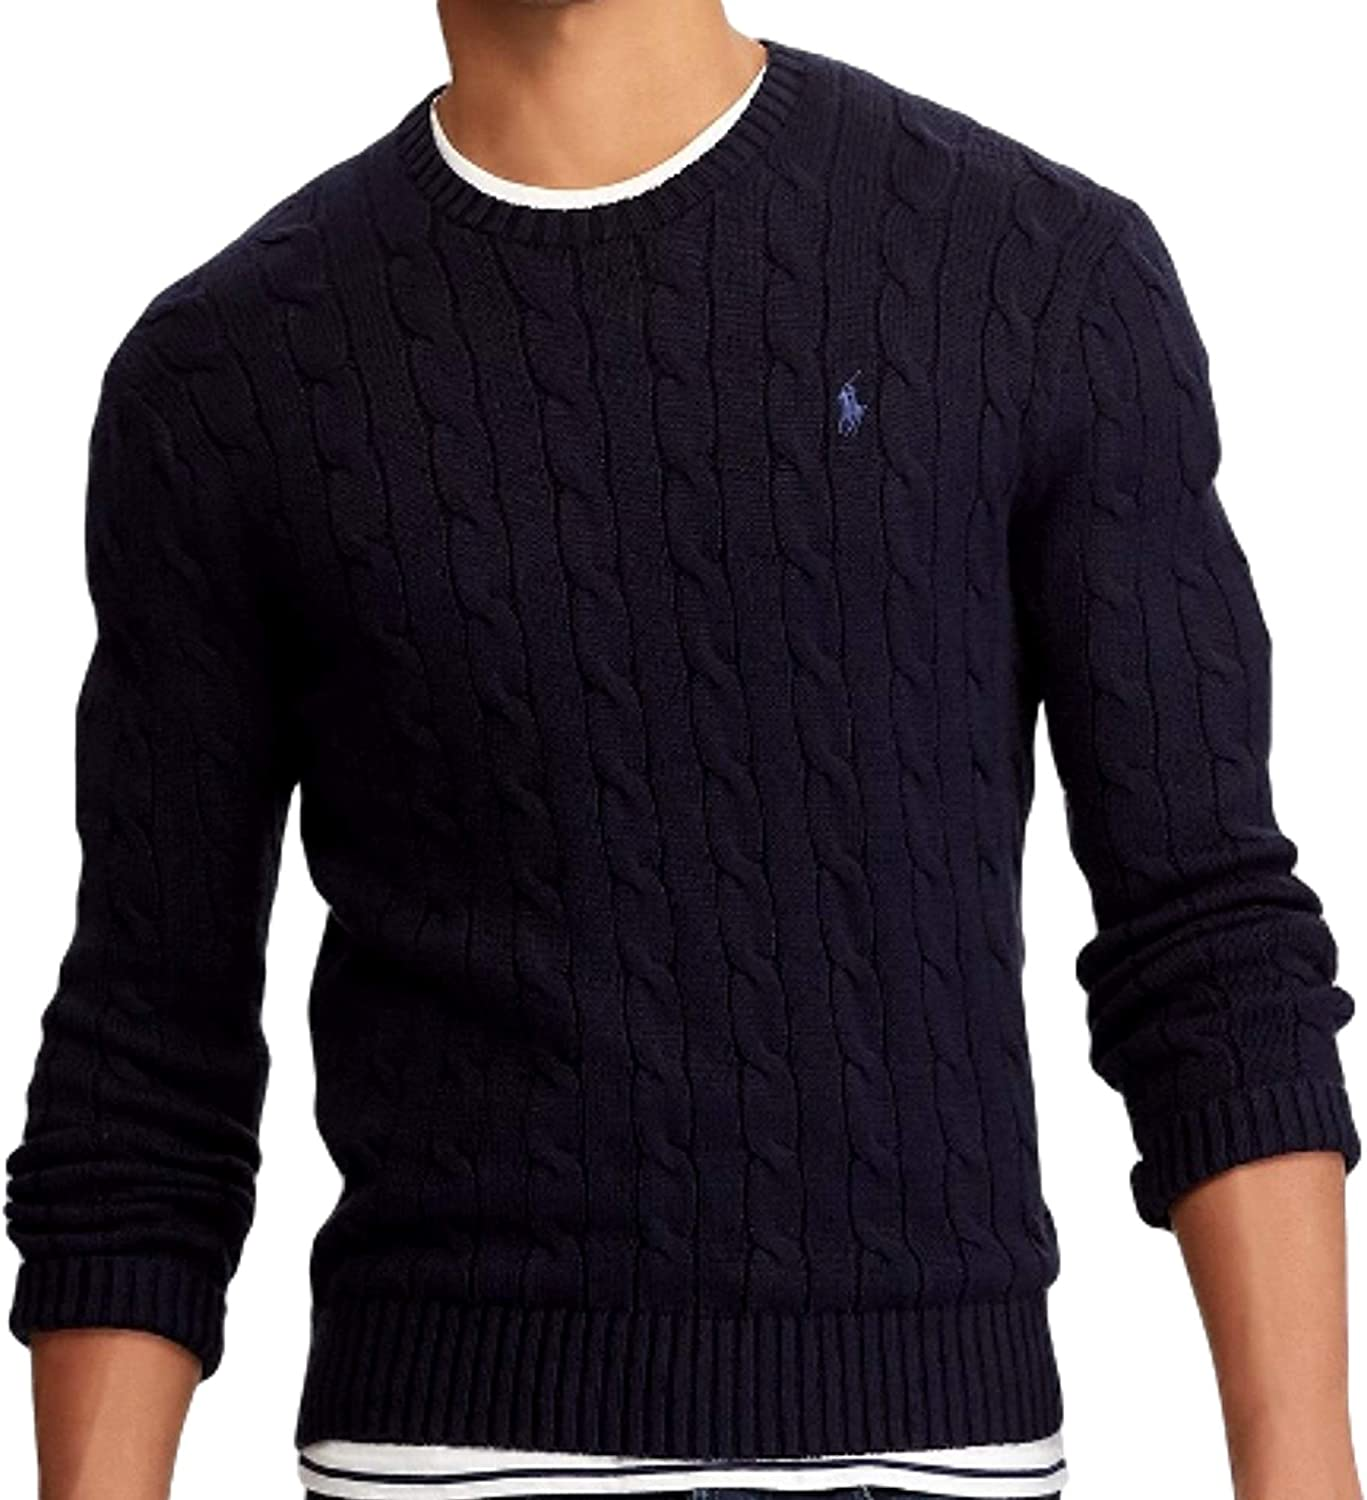 Polo RL Men's Cable Knit Pullover Sweater